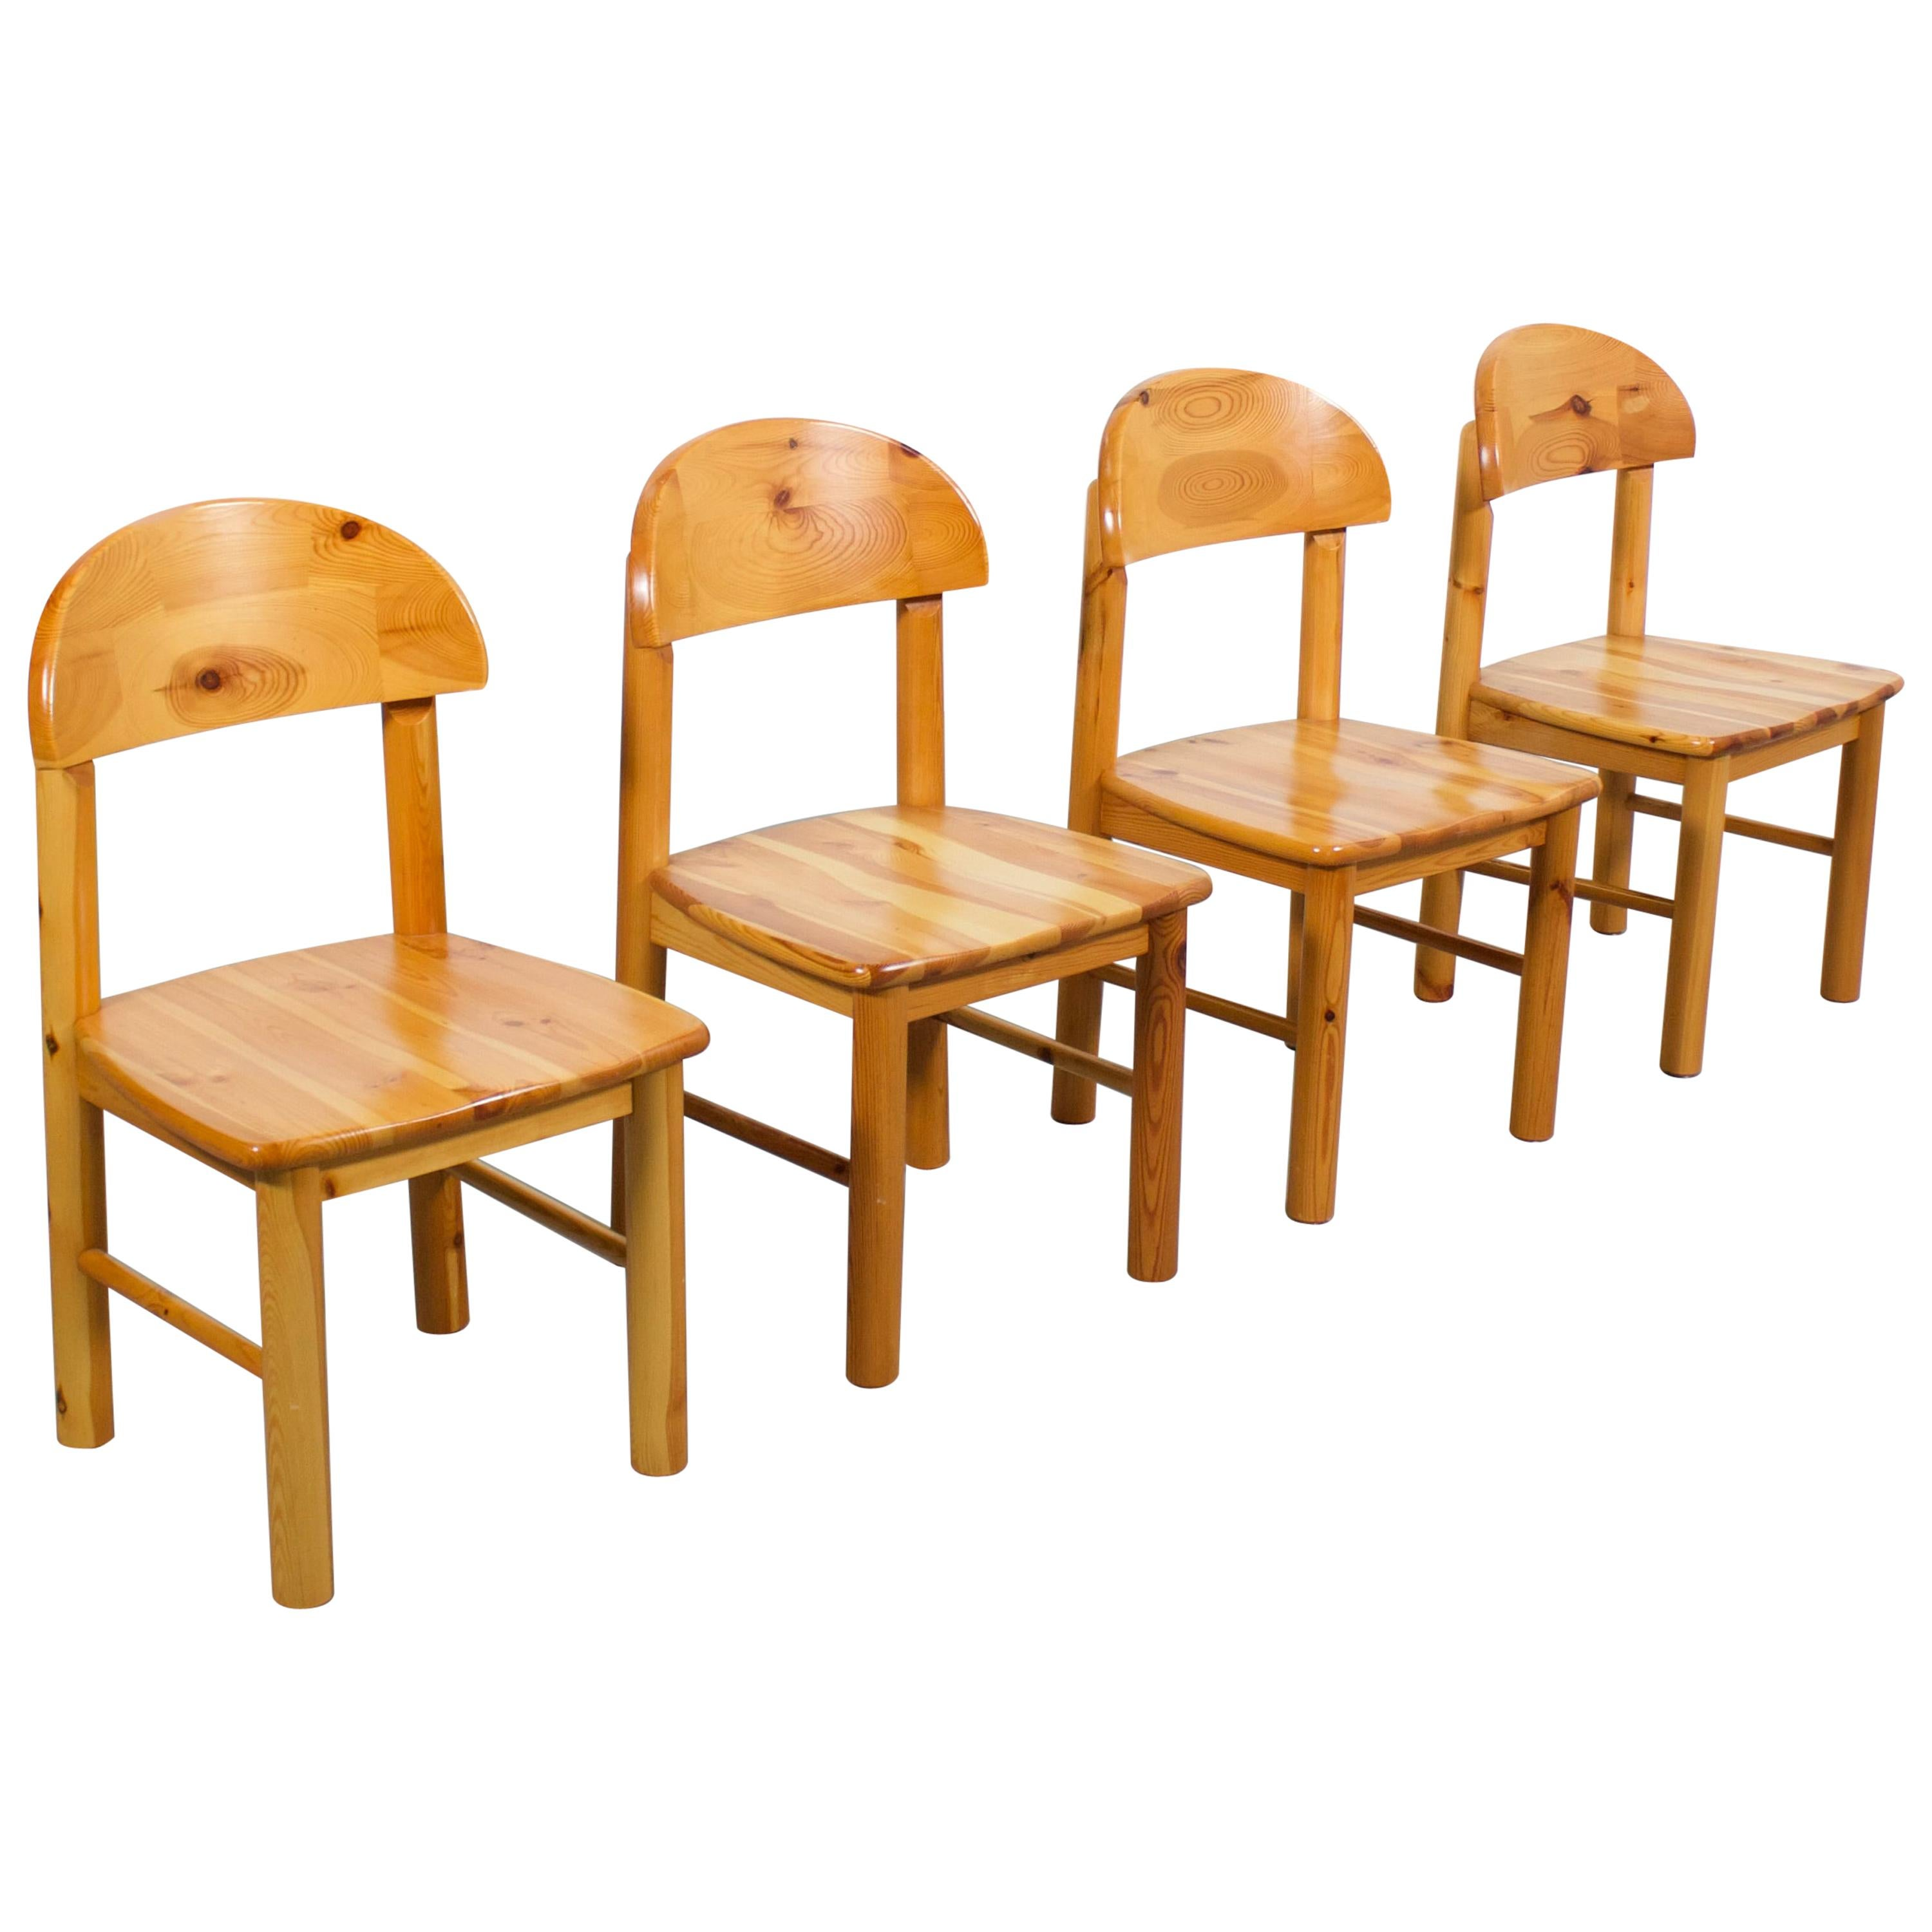 Set of Four Rainer Daumiller Pine Wood Dining Chairs, 1970s